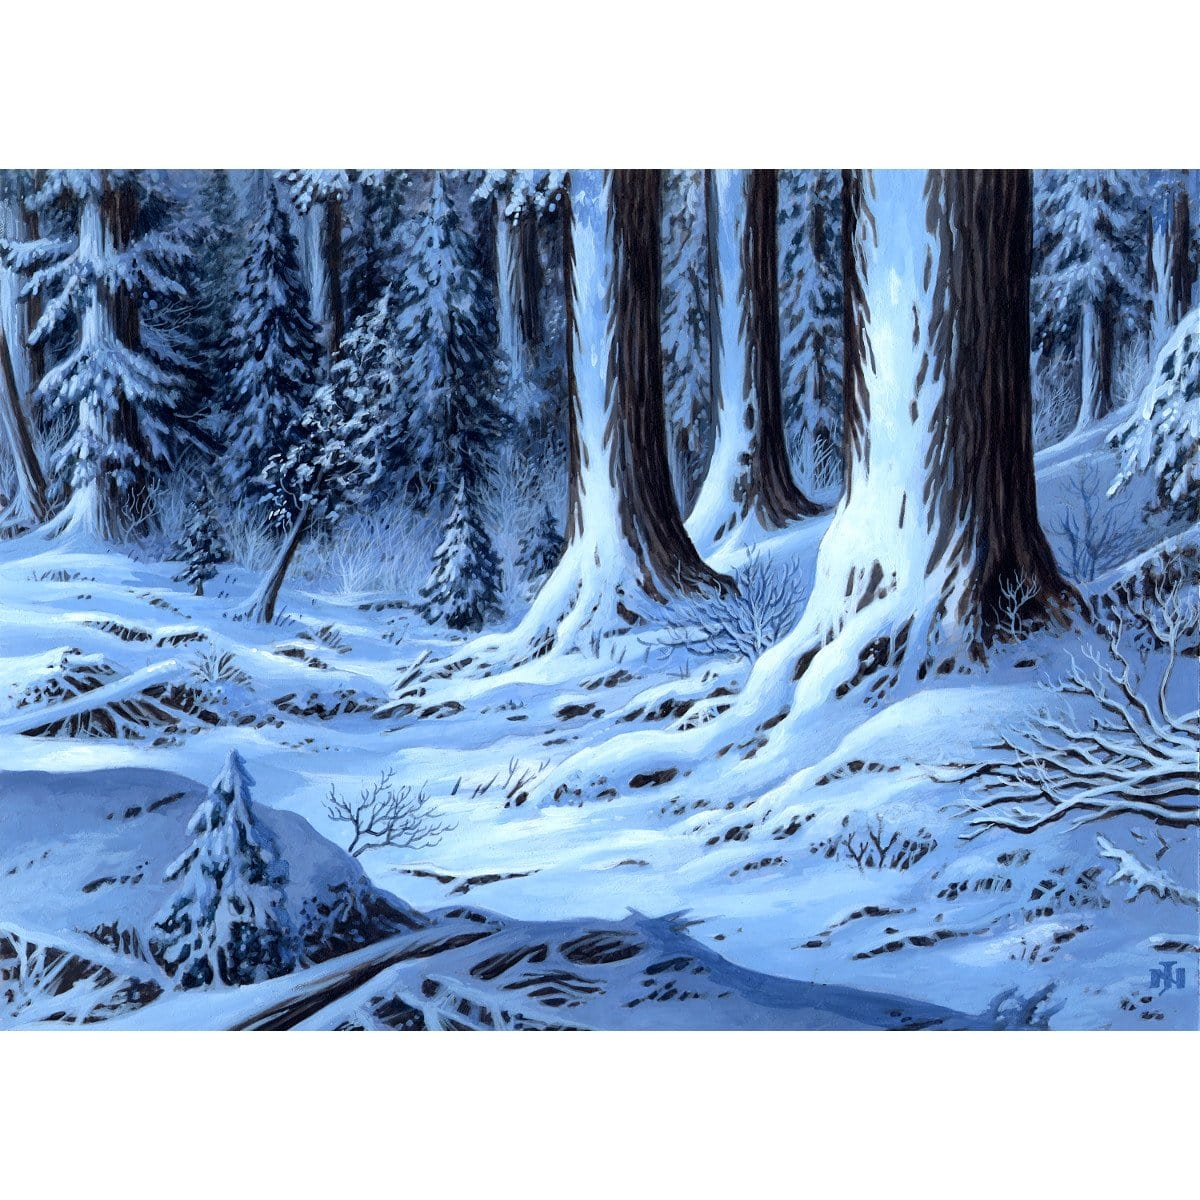 Snow-Covered Forest Print - Print - Original Magic Art - Accessories for Magic the Gathering and other card games